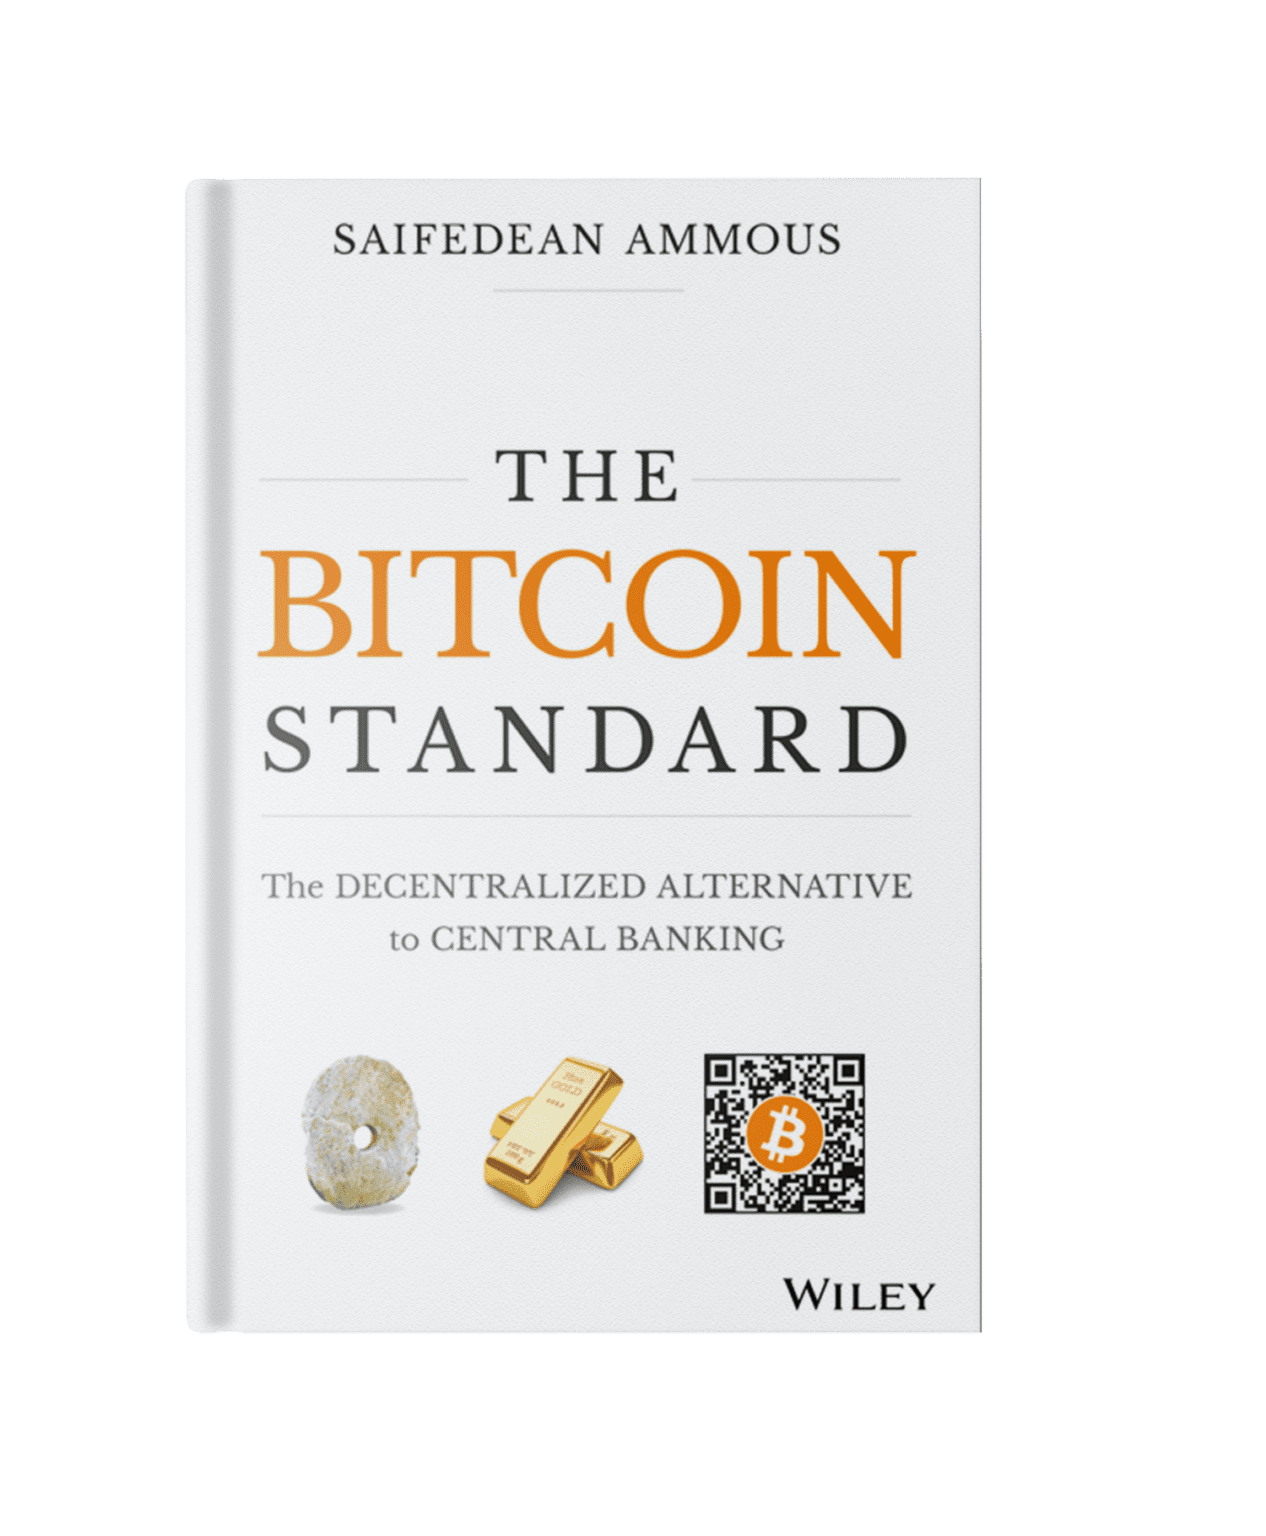 Ammous is best known for authoring The Bitcoin Standard.